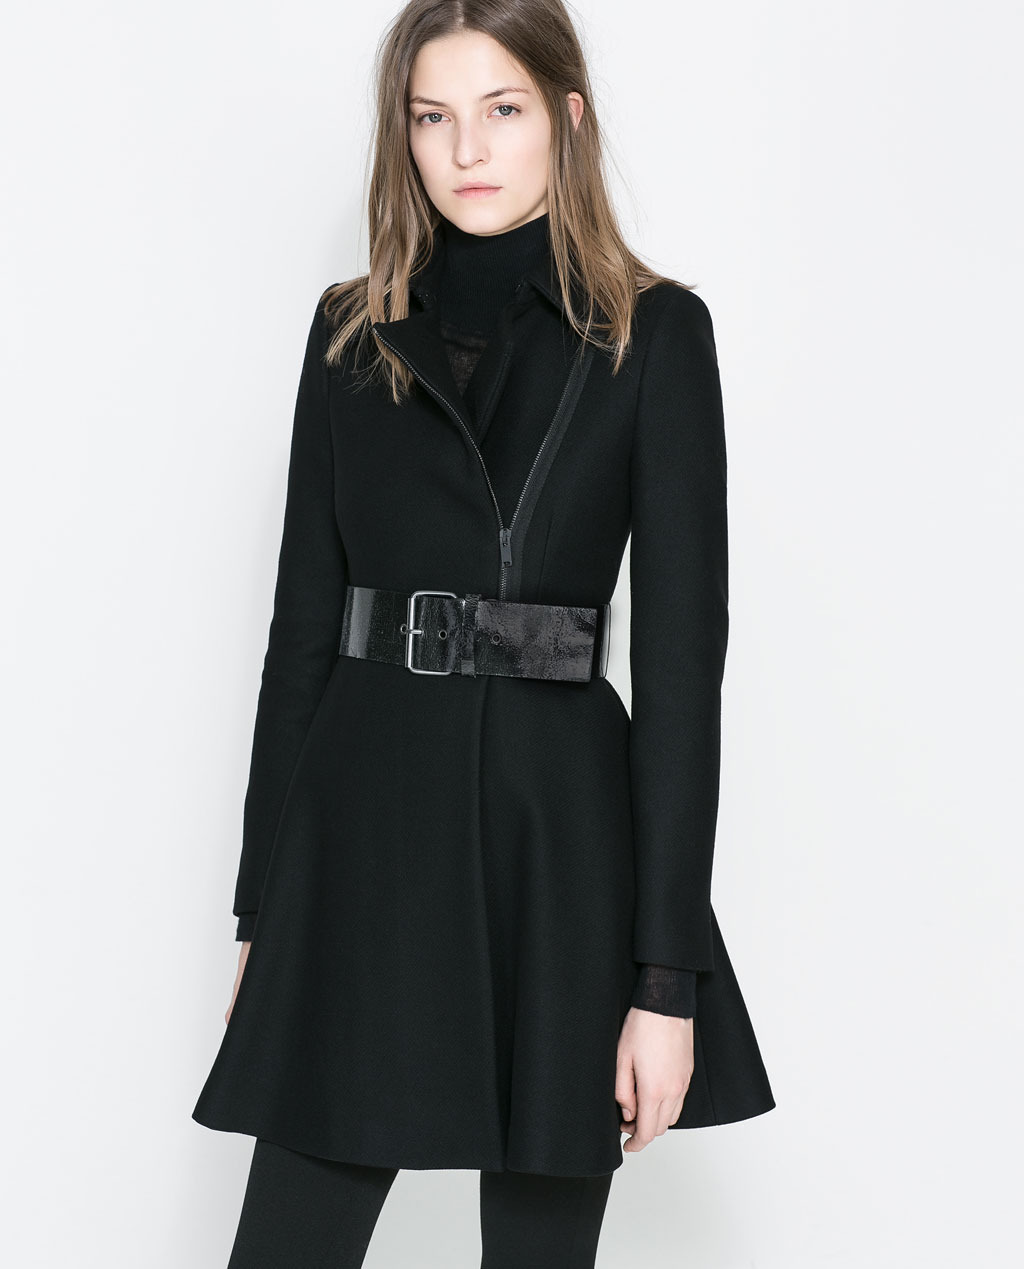 Peplum Coat - pattern: plain; collar: asymmetric biker; style: wrap around; predominant colour: black; occasions: casual, work, creative work; length: floor length; fit: tailored/fitted; fibres: wool - mix; waist detail: belted waist/tie at waist/drawstring; sleeve length: long sleeve; sleeve style: standard; collar break: high/illusion of break when open; pattern type: fabric; texture group: woven bulky/heavy; season: a/w 2013